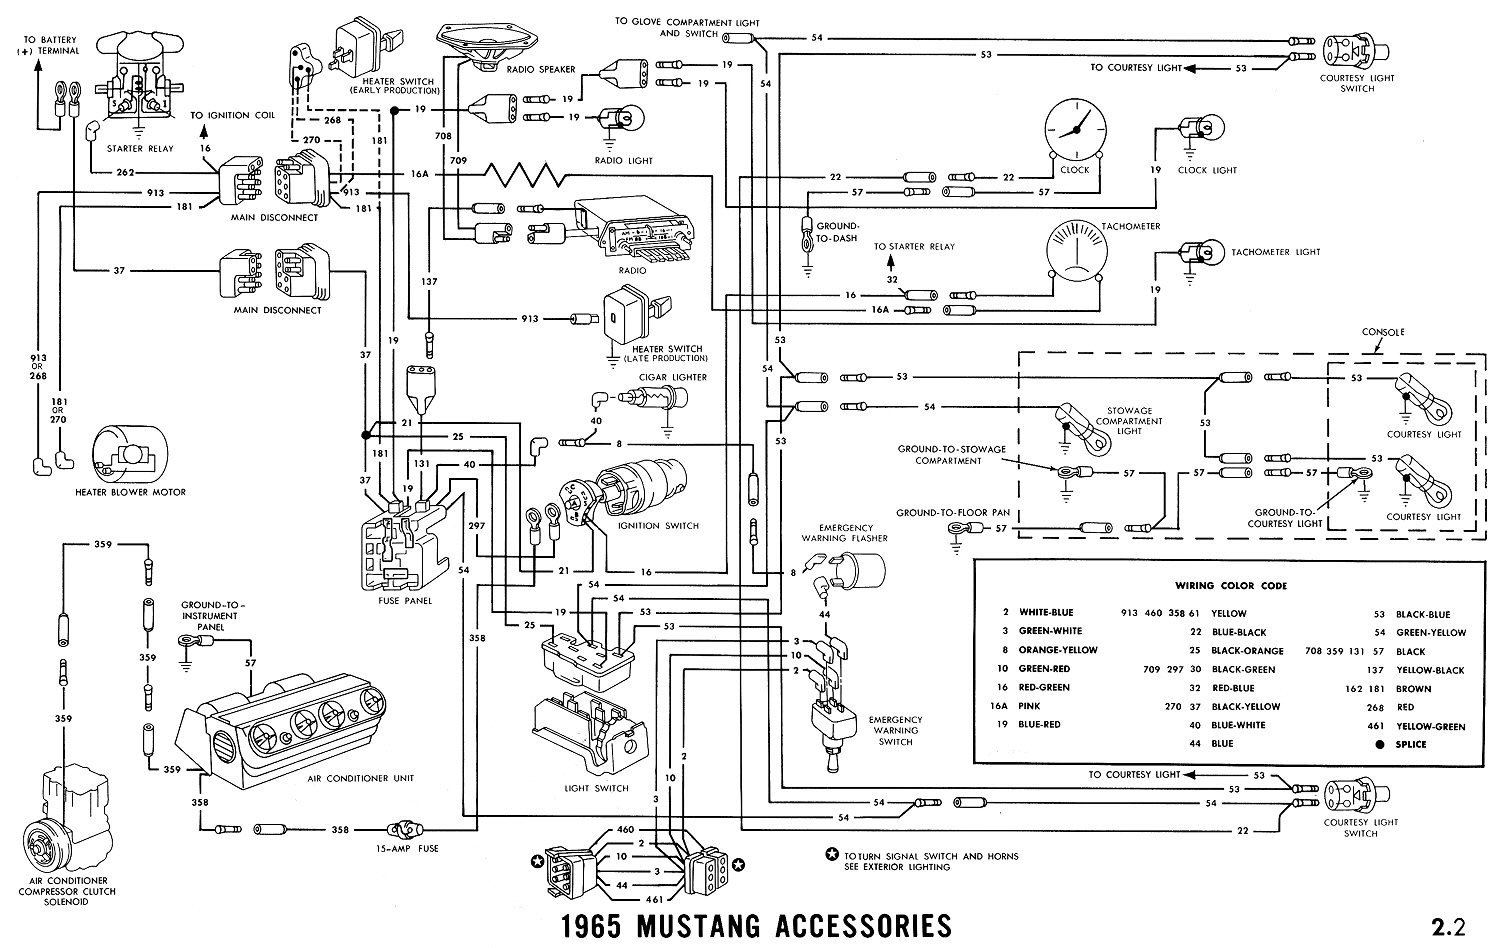 1965i 1967 mustang wiring diagram 67 mustang solenoid wiring diagram 1965 mustang turn signal wiring diagram at crackthecode.co